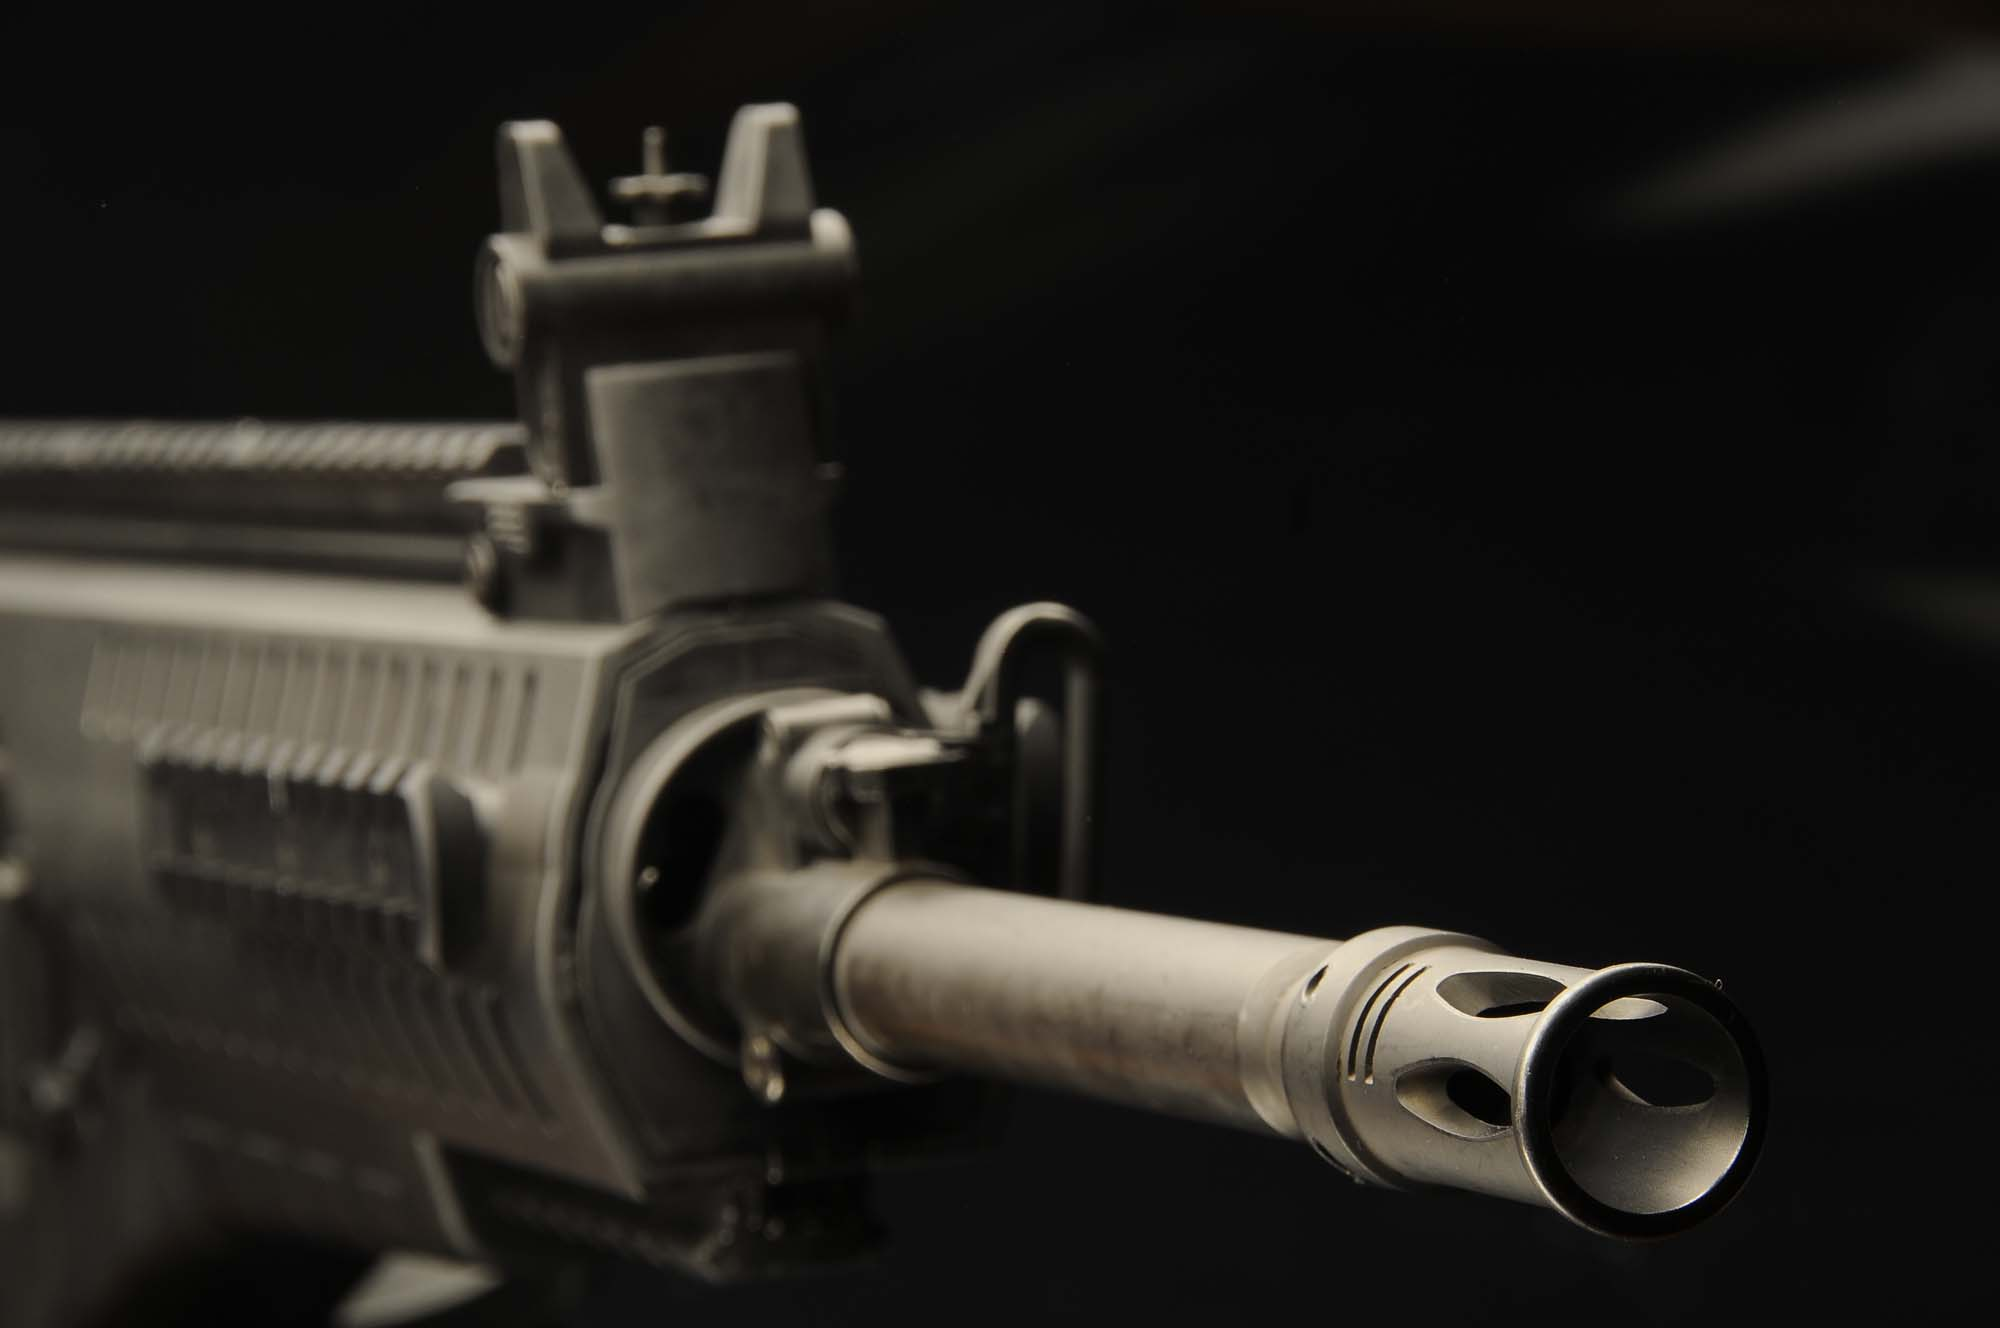 The ARX-160 barrel chambered in 7.62x39mm is manufactured following Beretta's highest Standards